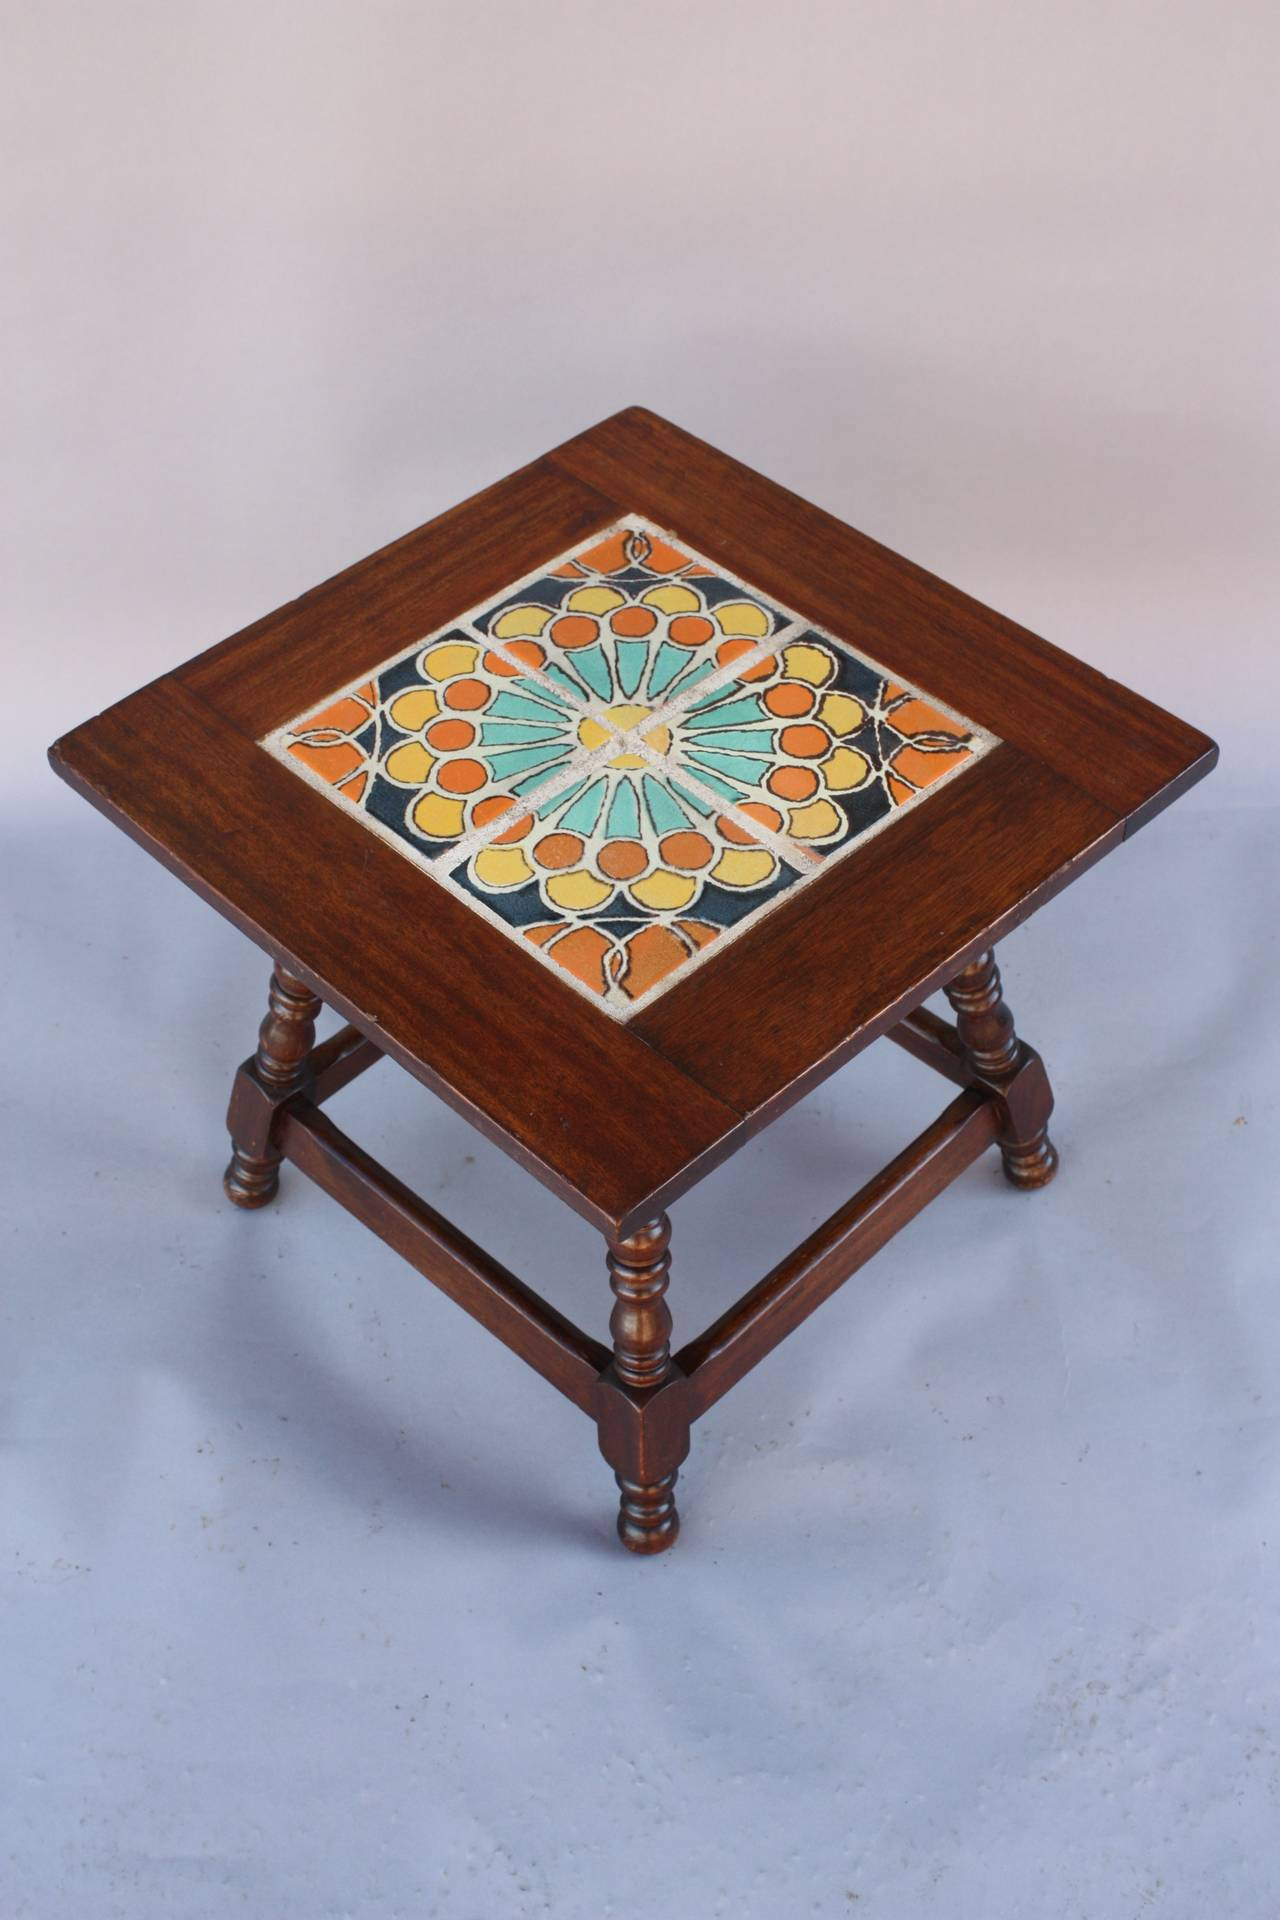 Antique California Tile Table Made by Hispano Moresque at 1stdibs